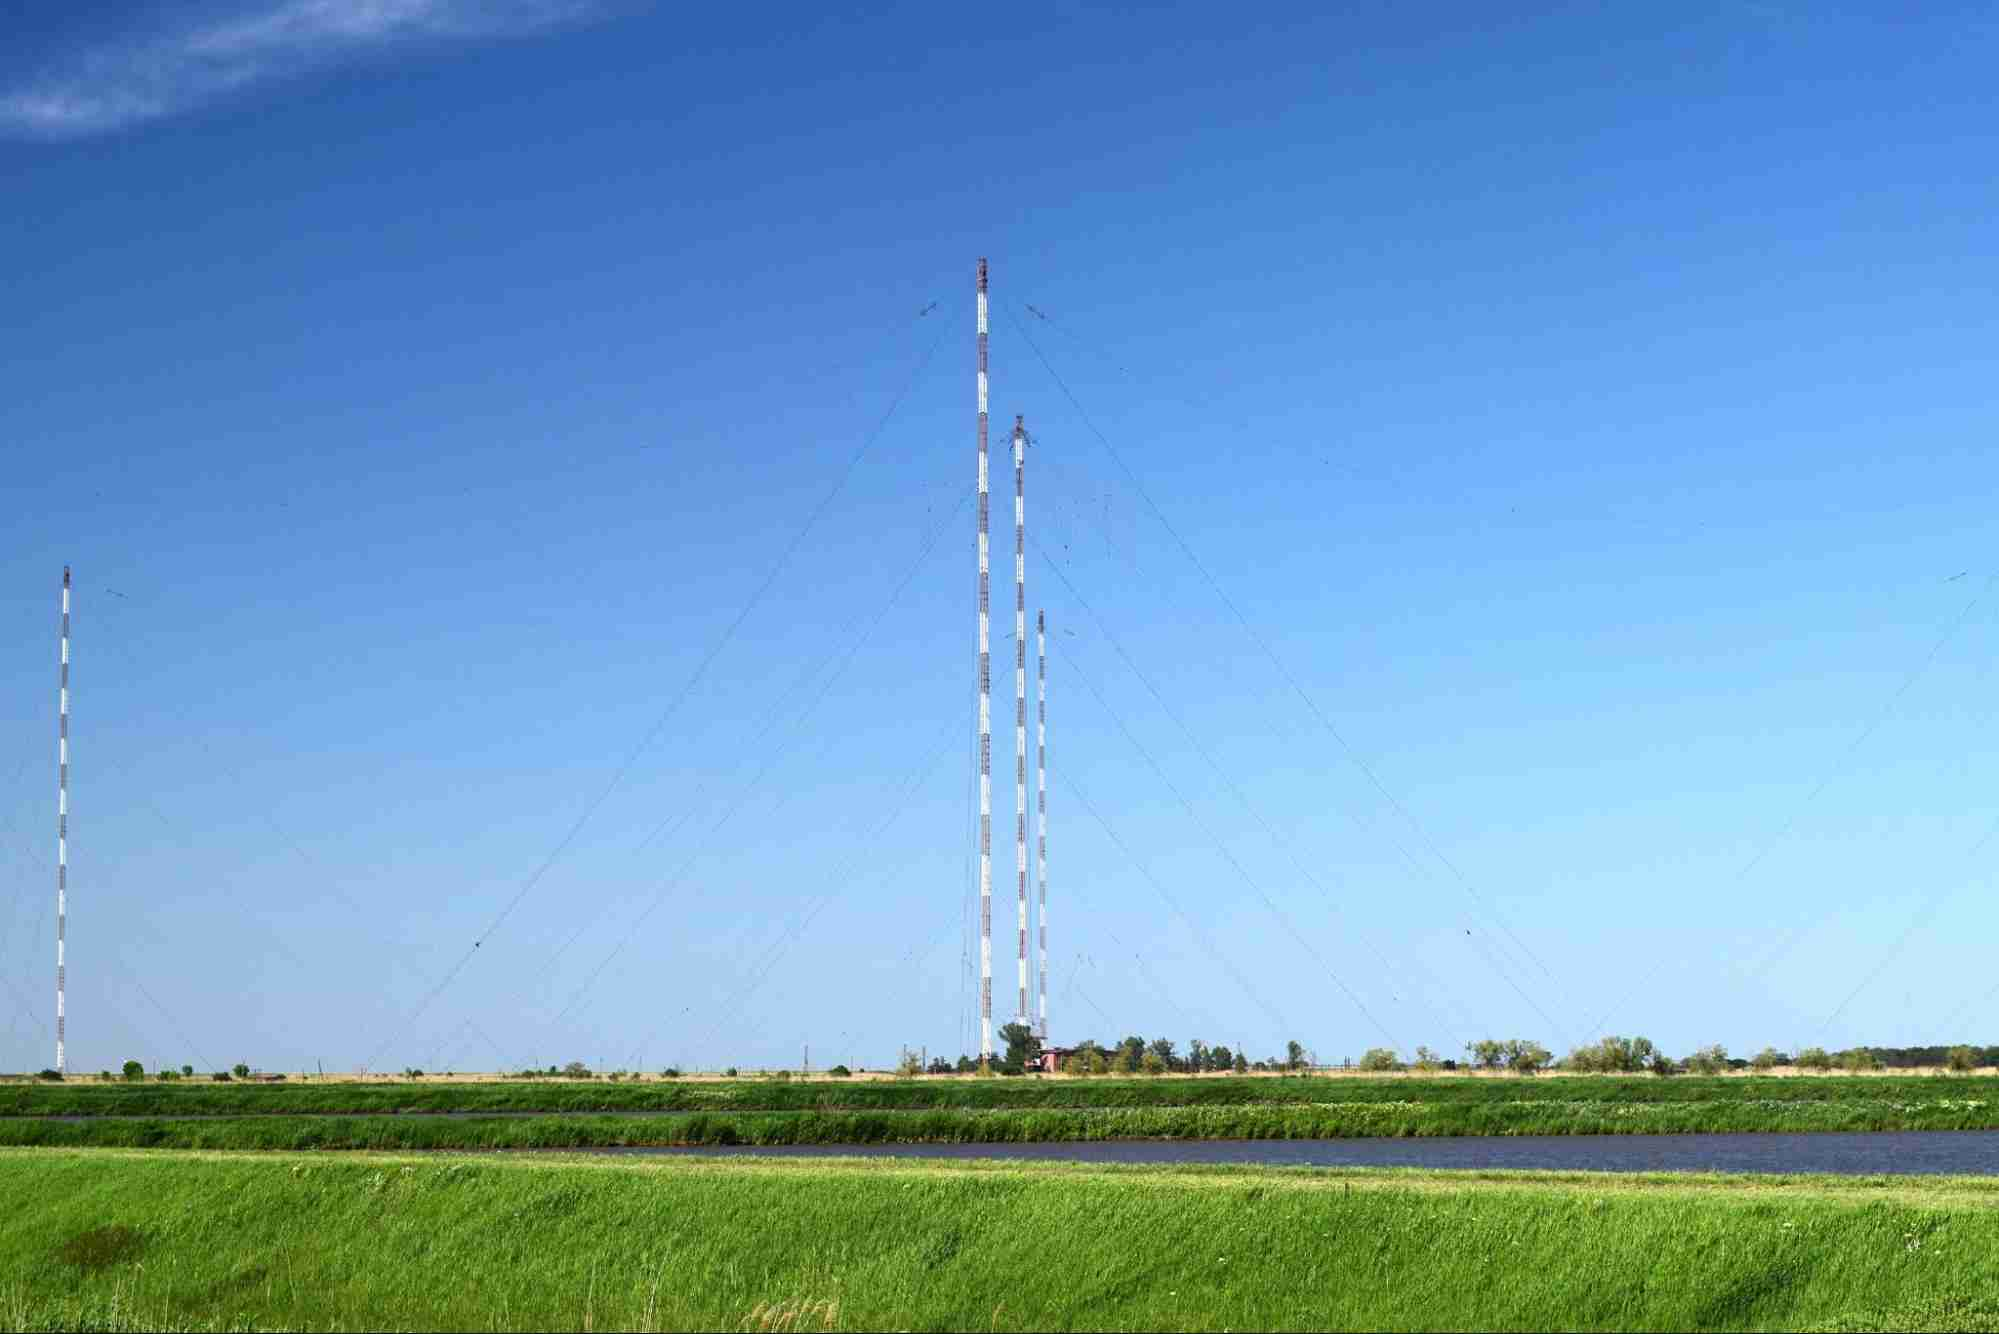 Hiring A Crane Company For Cell Tower Installation